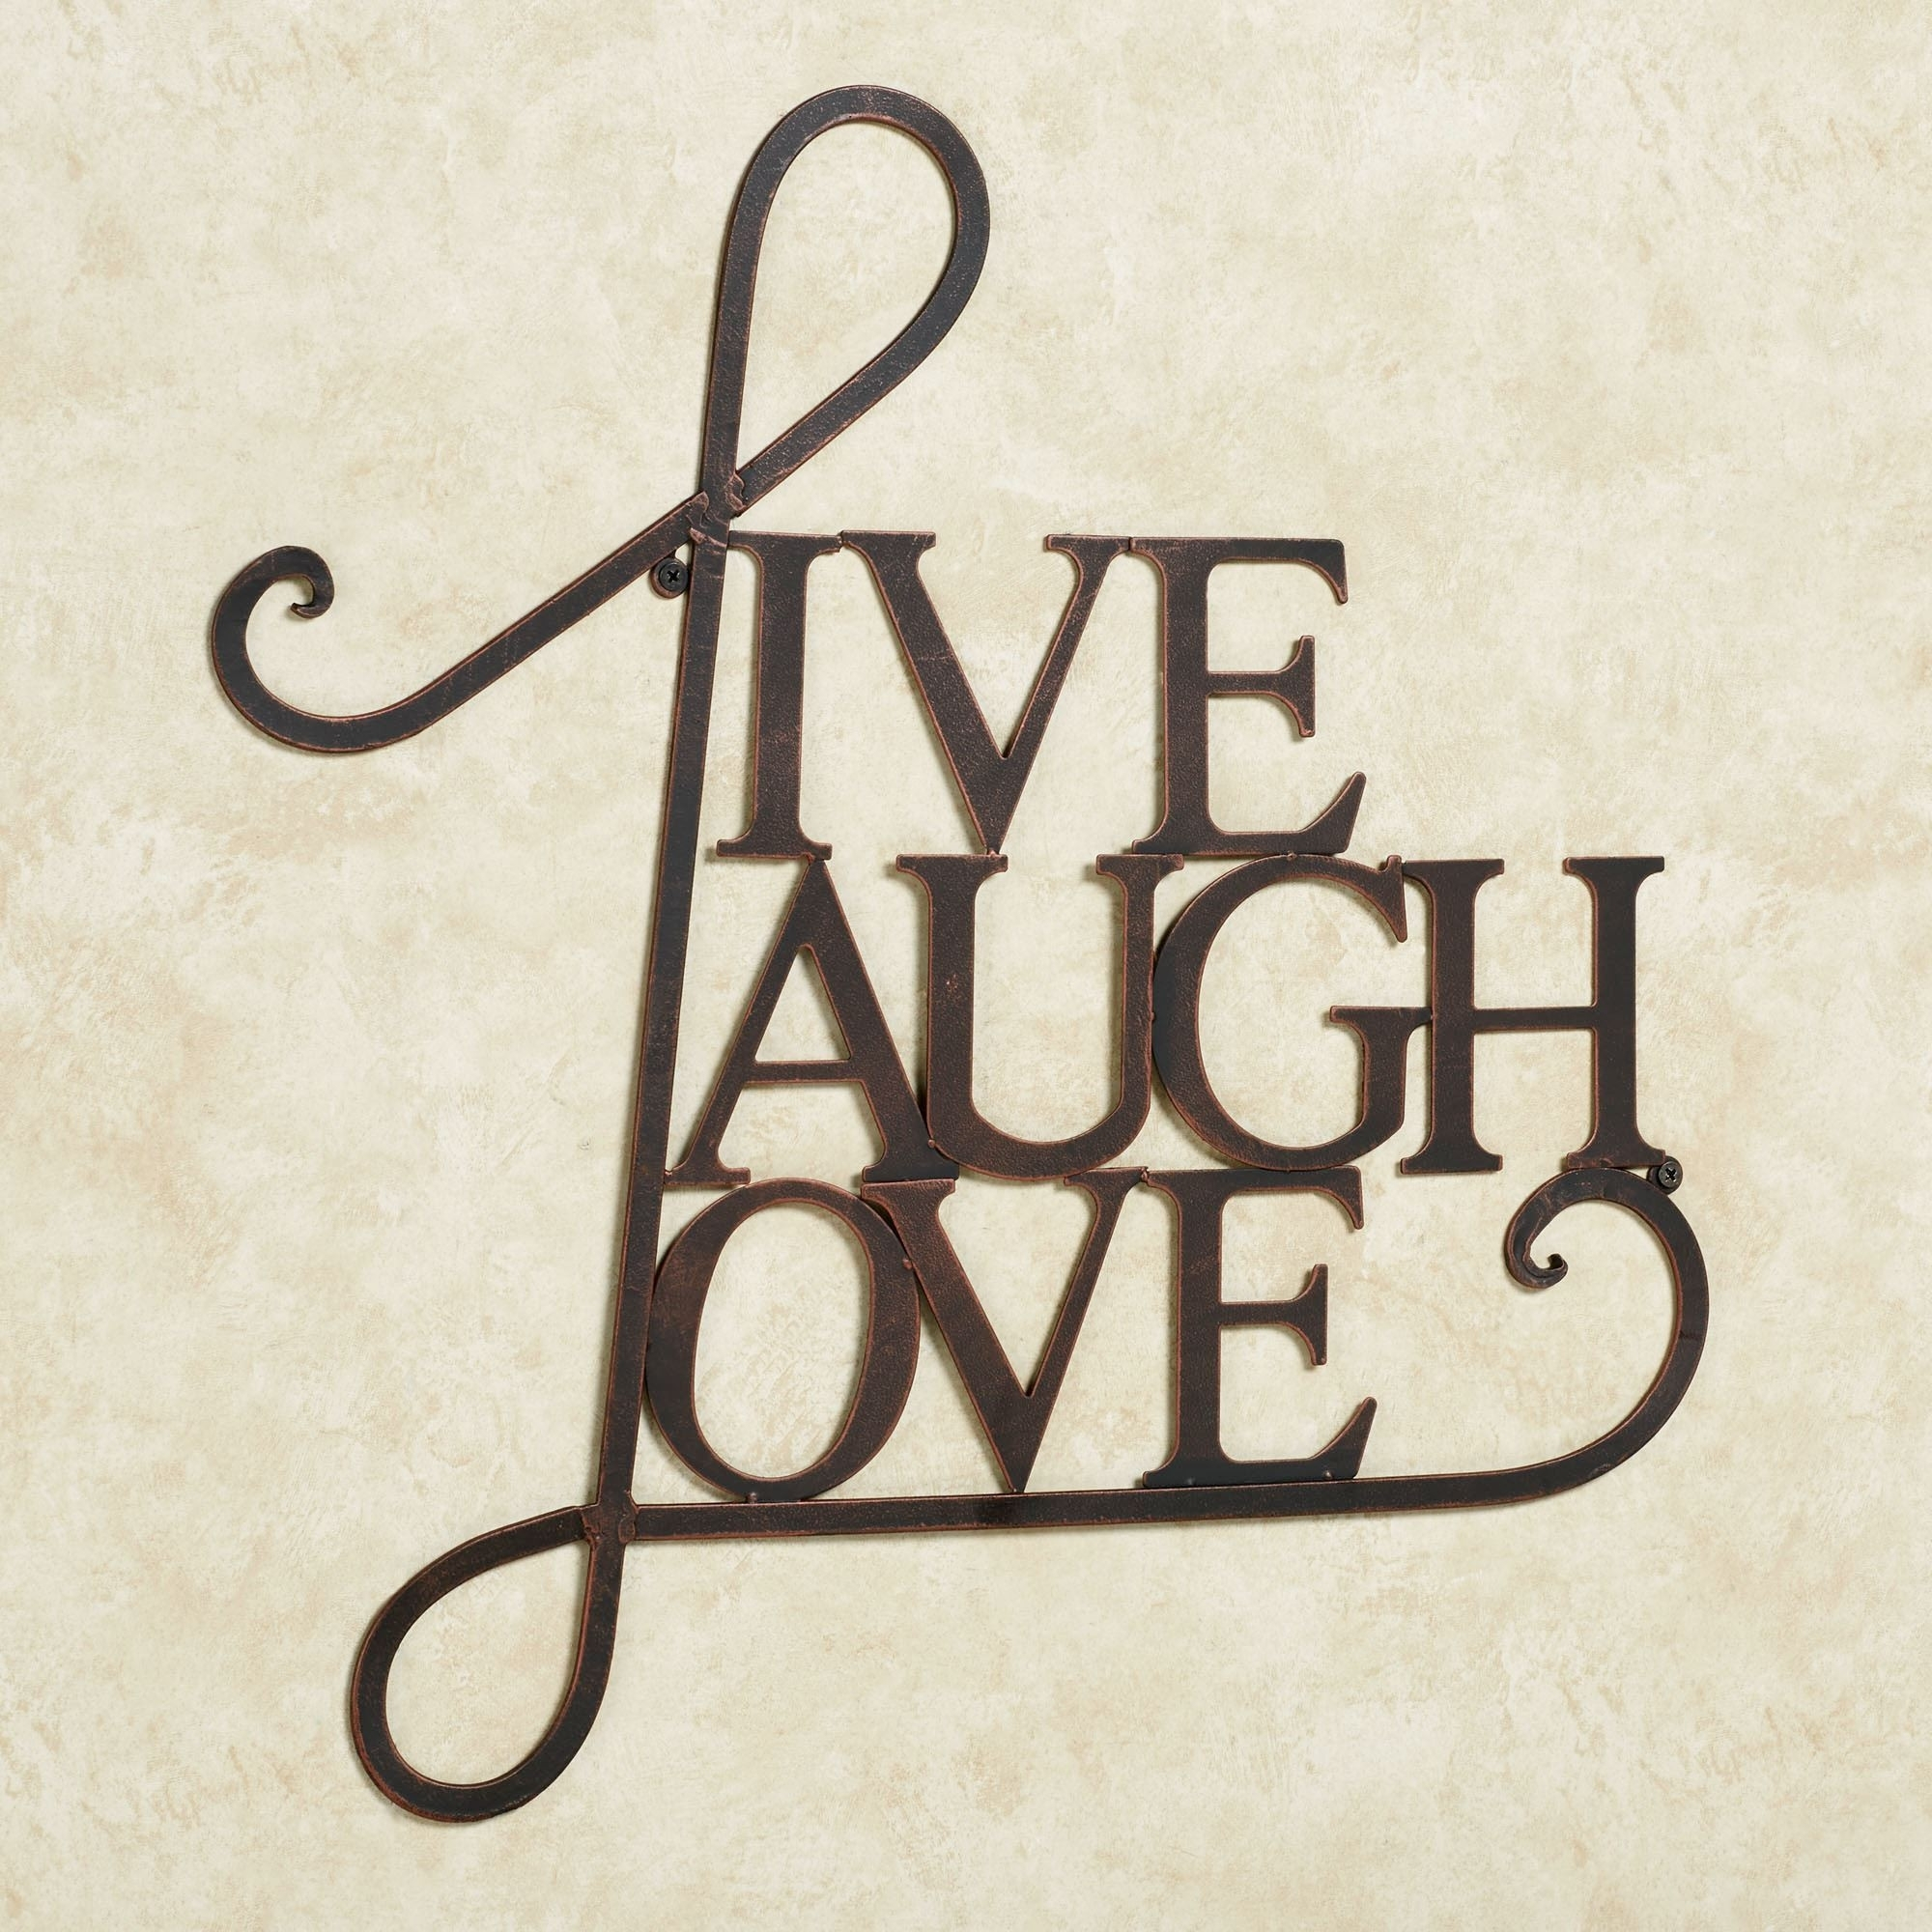 Live Laugh Love Metal Word Wall Art Fair | Bakerstreetbricolage For Most Recent Live Laugh Love Wall Art (View 13 of 20)